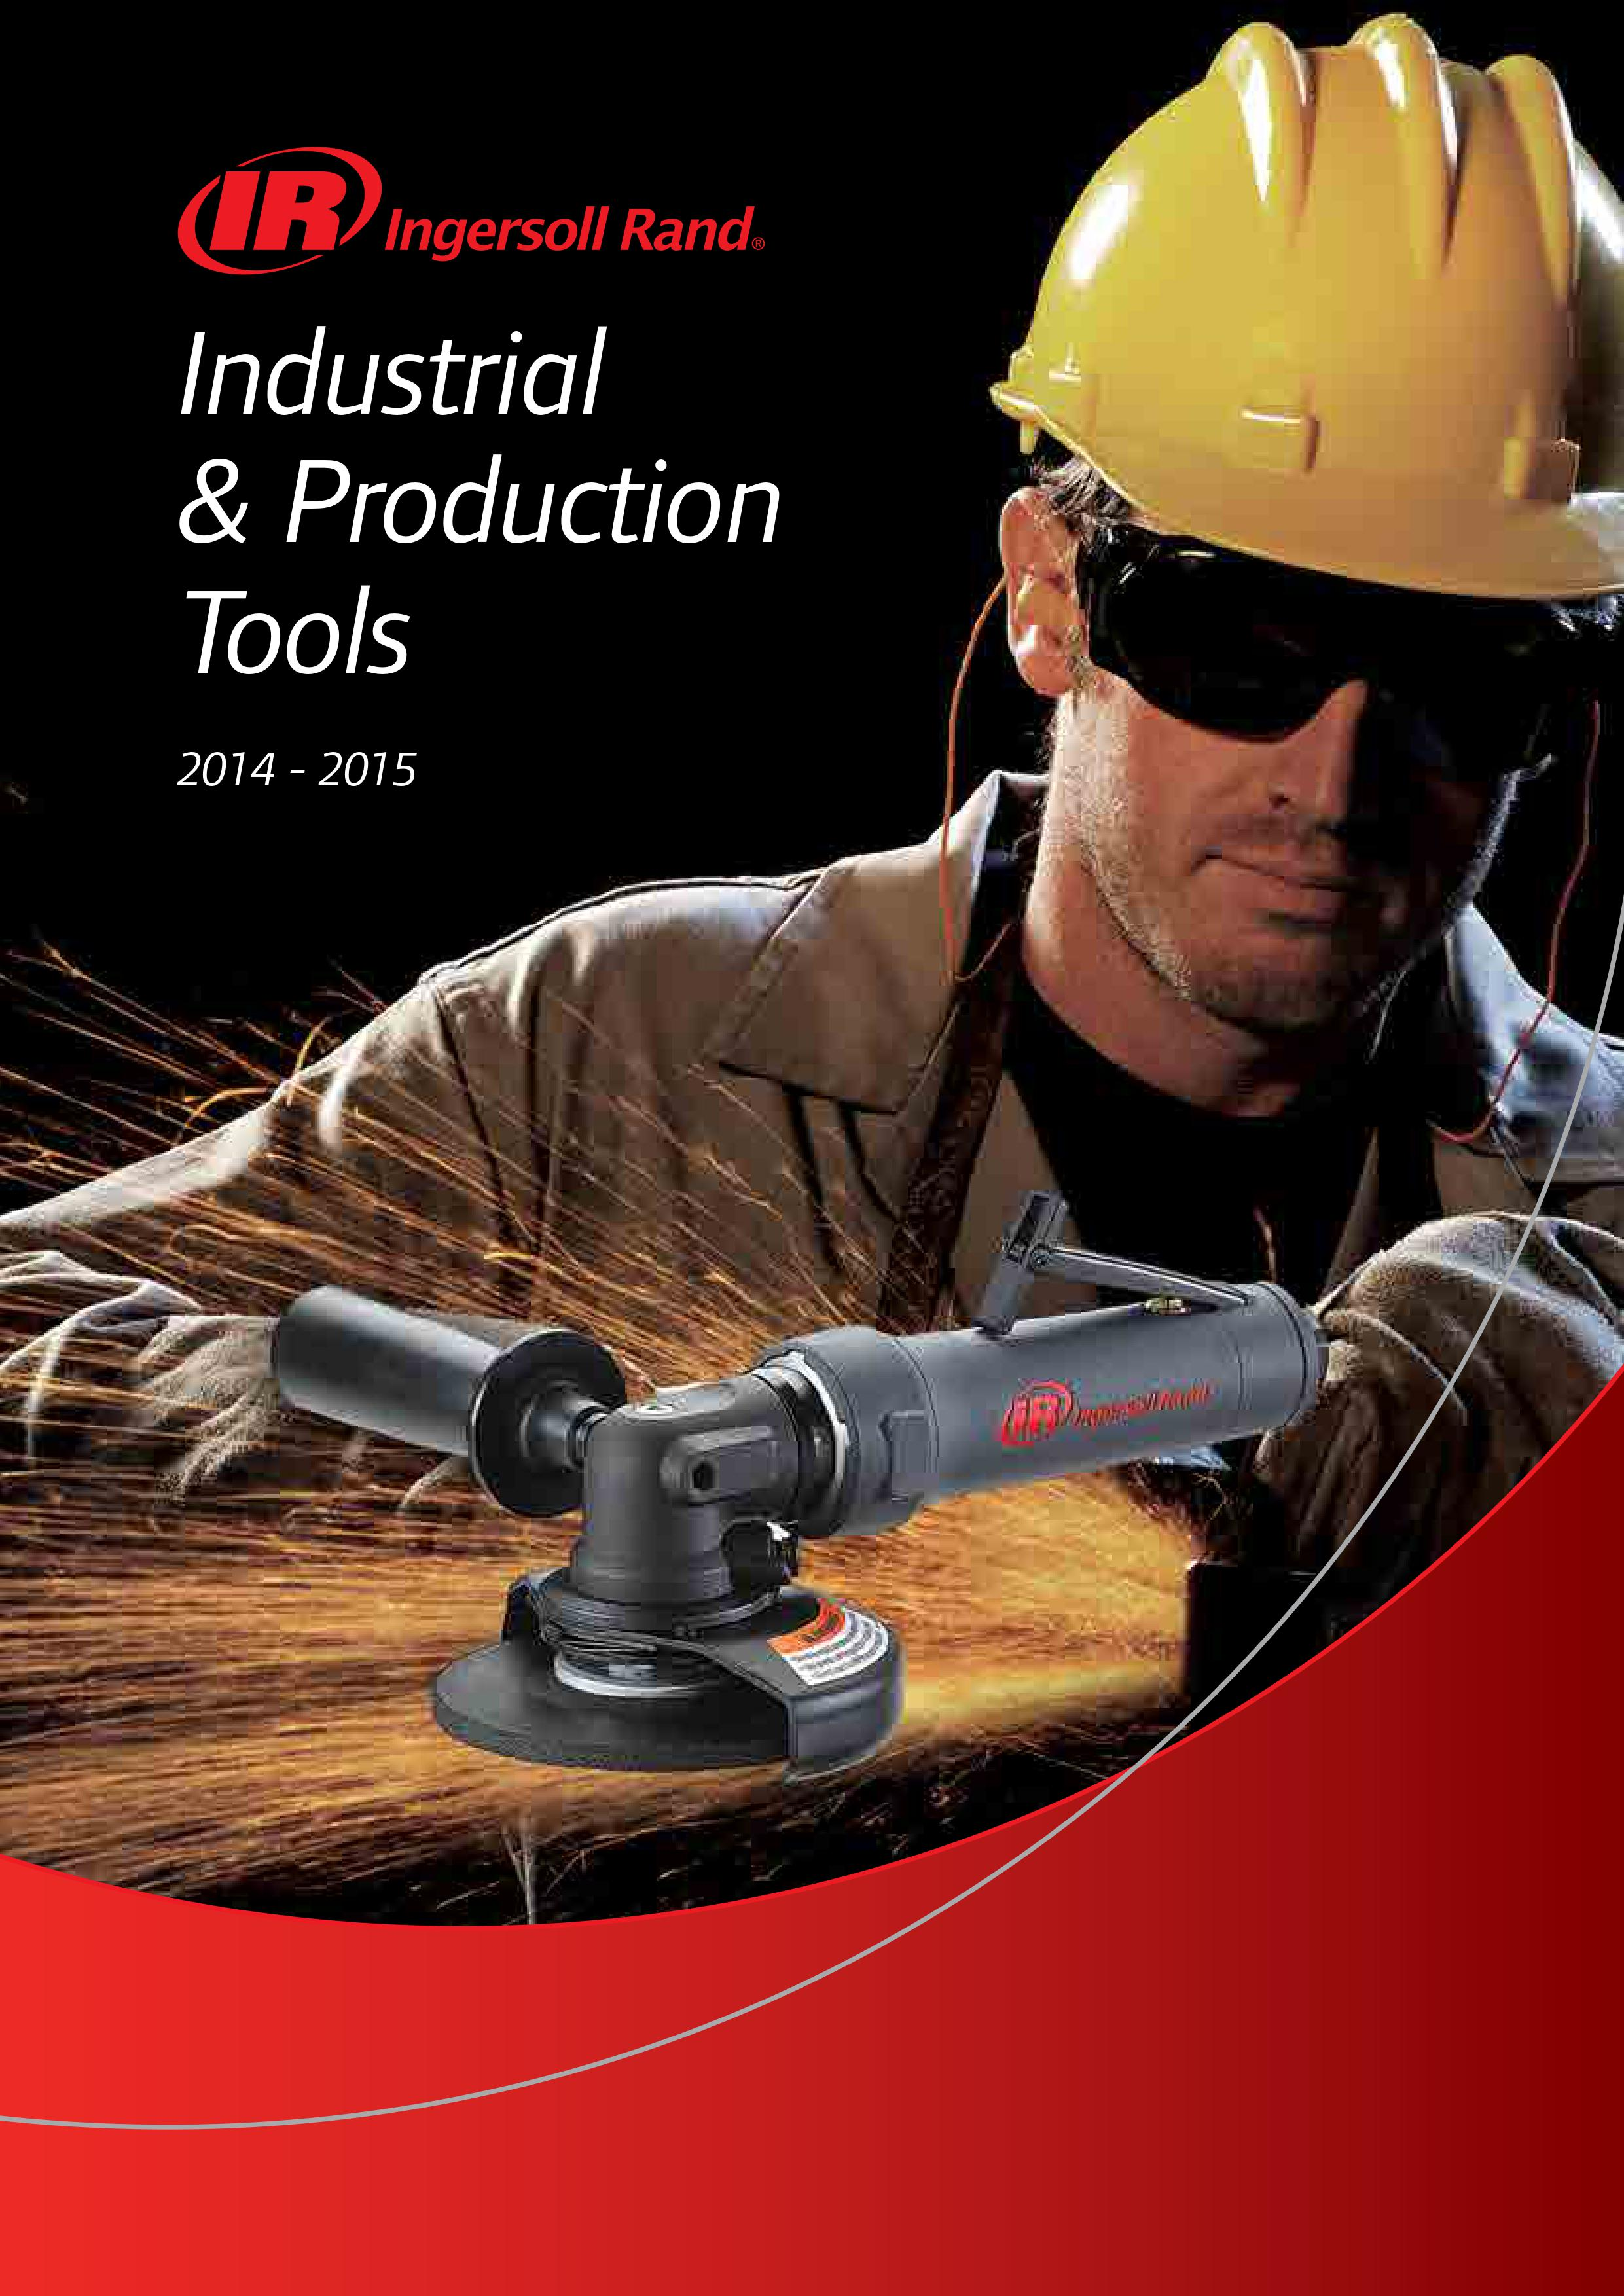 INDUSTRIAL & PRODUCTION TOOLS